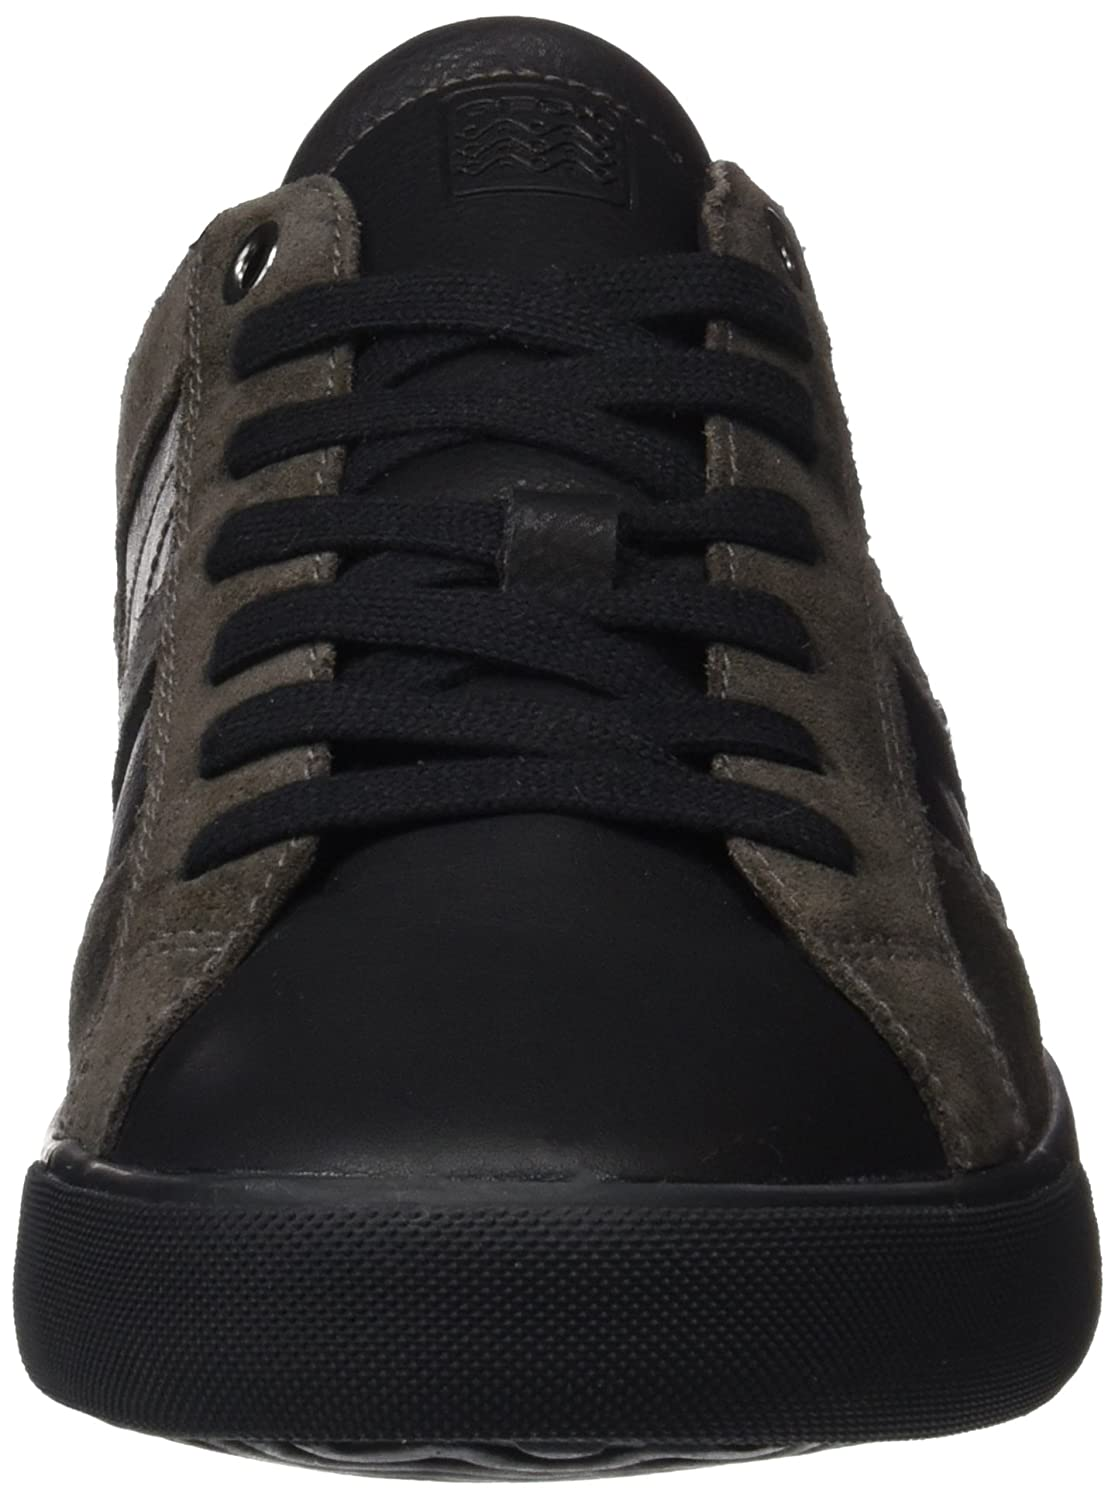 uk availability 81ee8 79213 ... Geox Herren U D Smart D U Low-Top 25baf7 ...